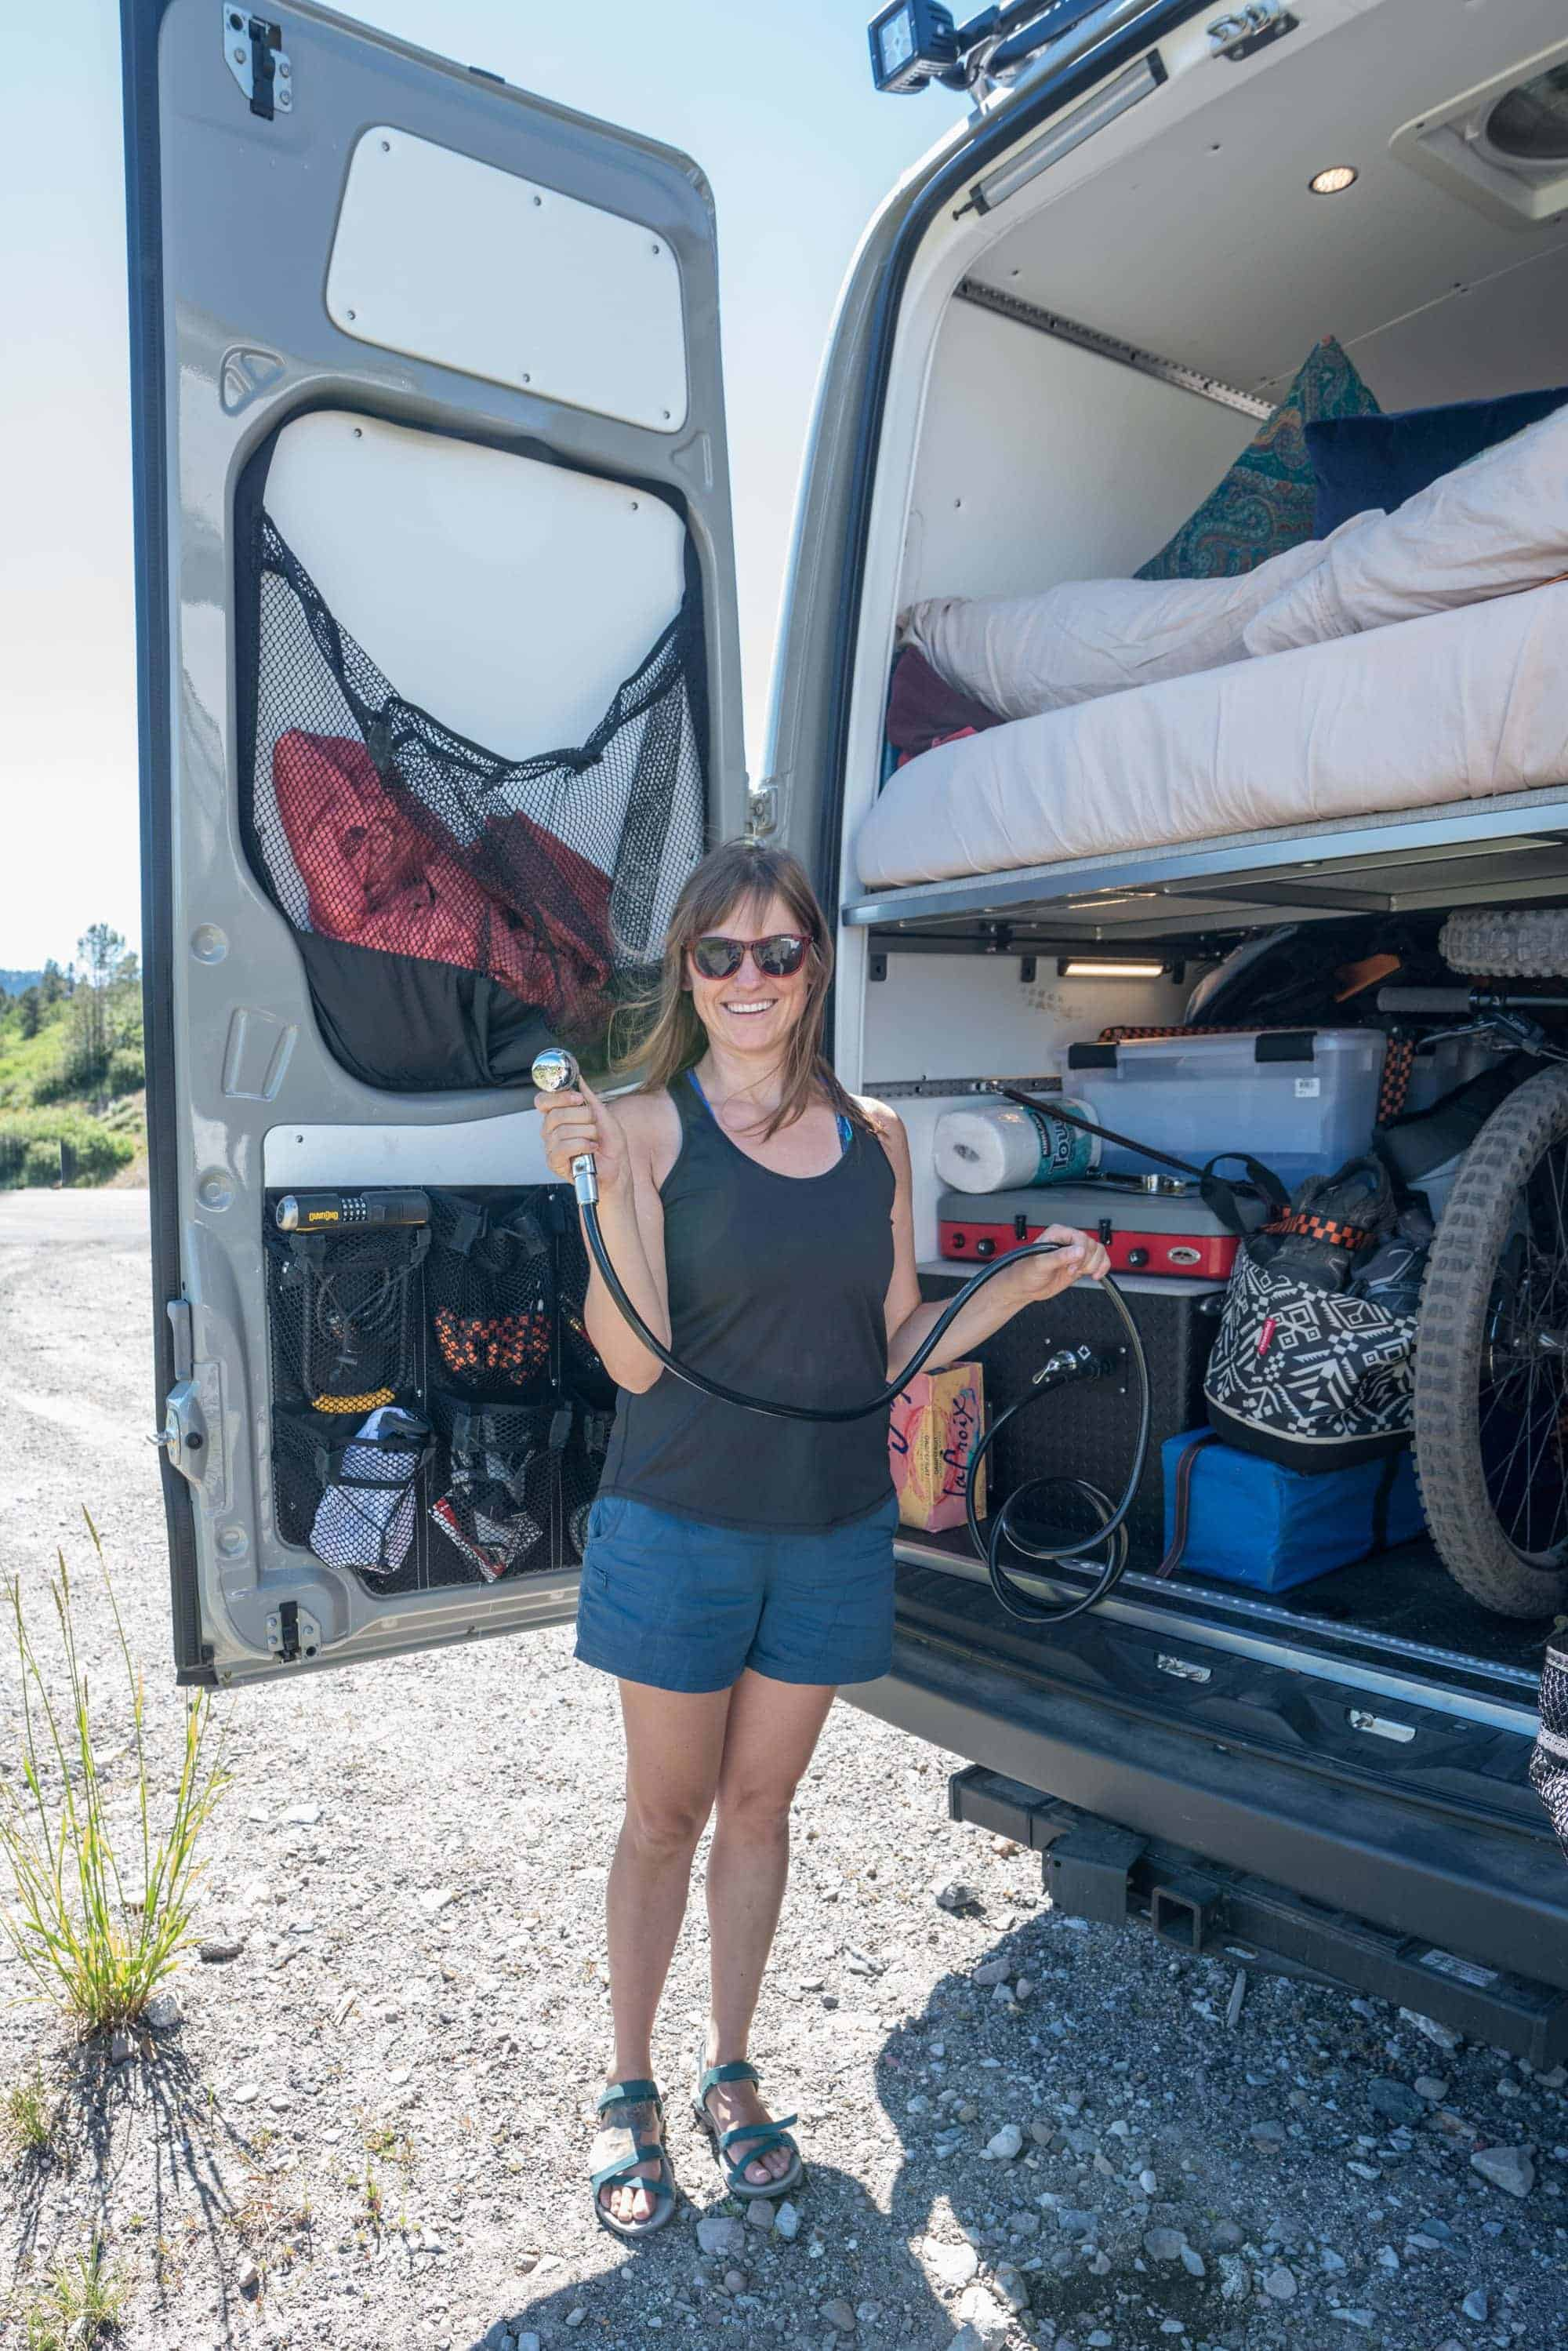 Having a shower in your camper van sounds nice, but it's expensive and unncessary. Here are 5 reasons you don't need a shower in your converted van.